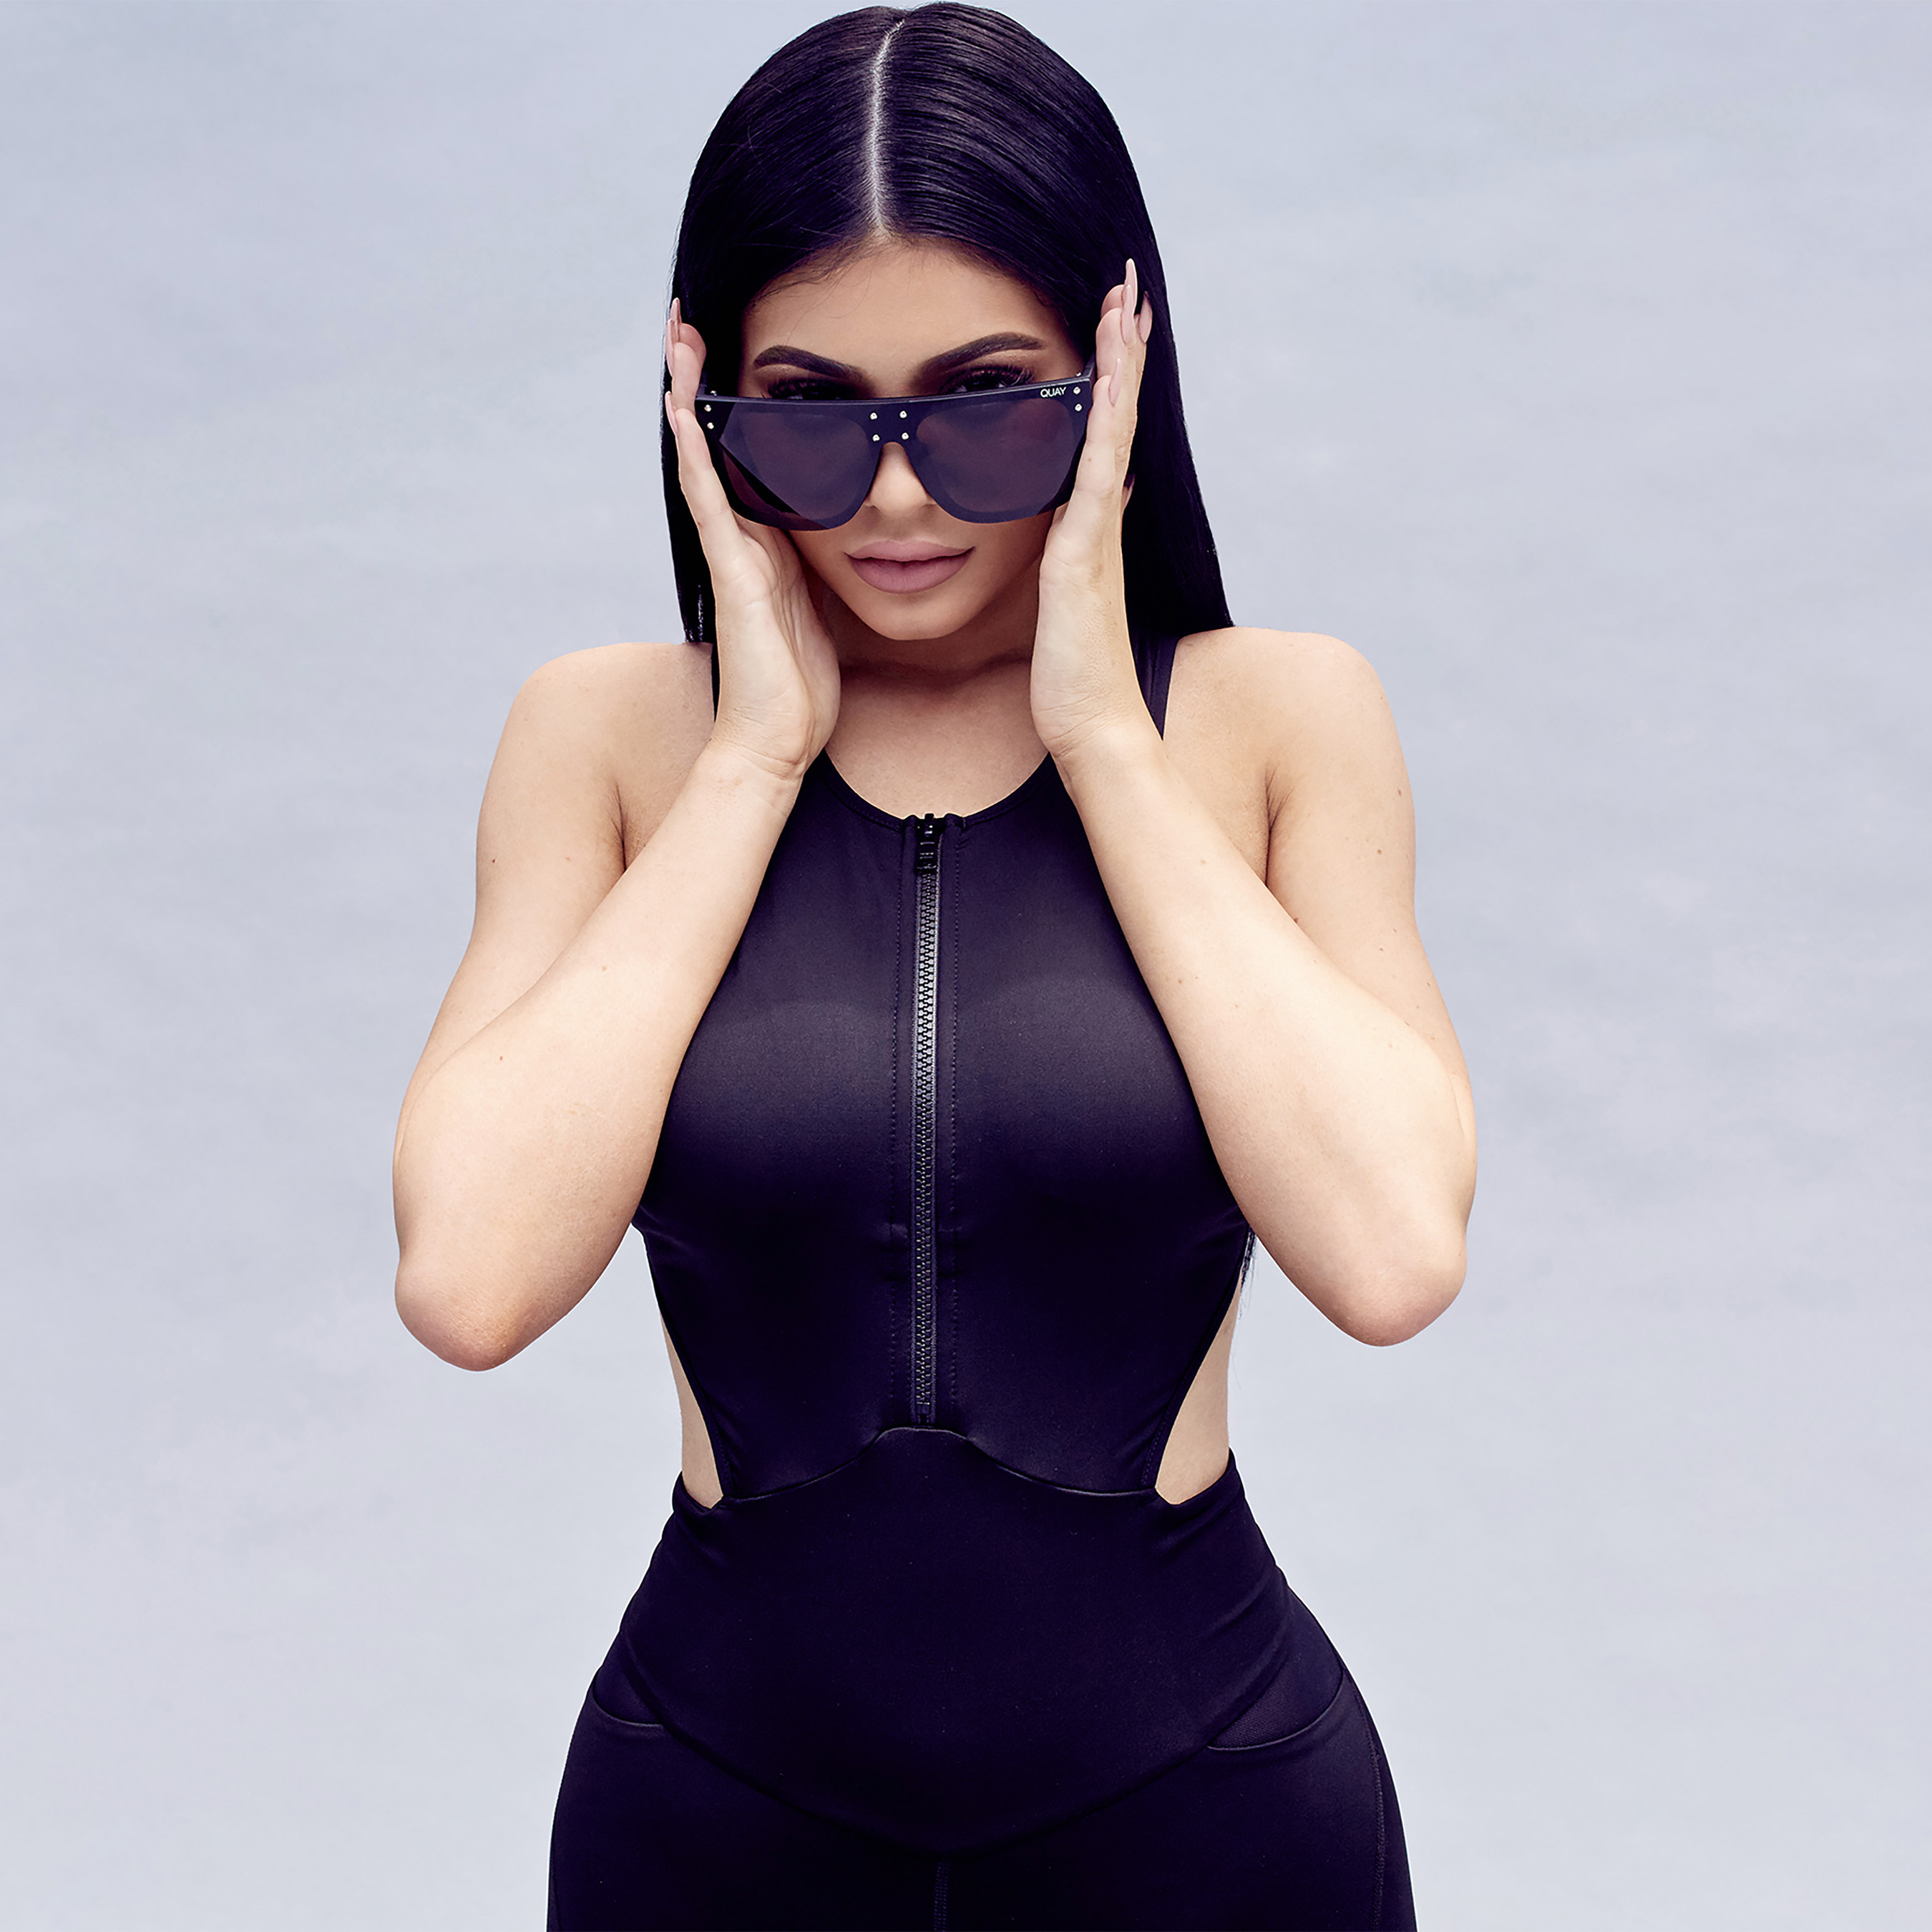 3395a22dd3 Quay Australia Teams Up With Kylie Jenner For A Limited-Edition ...